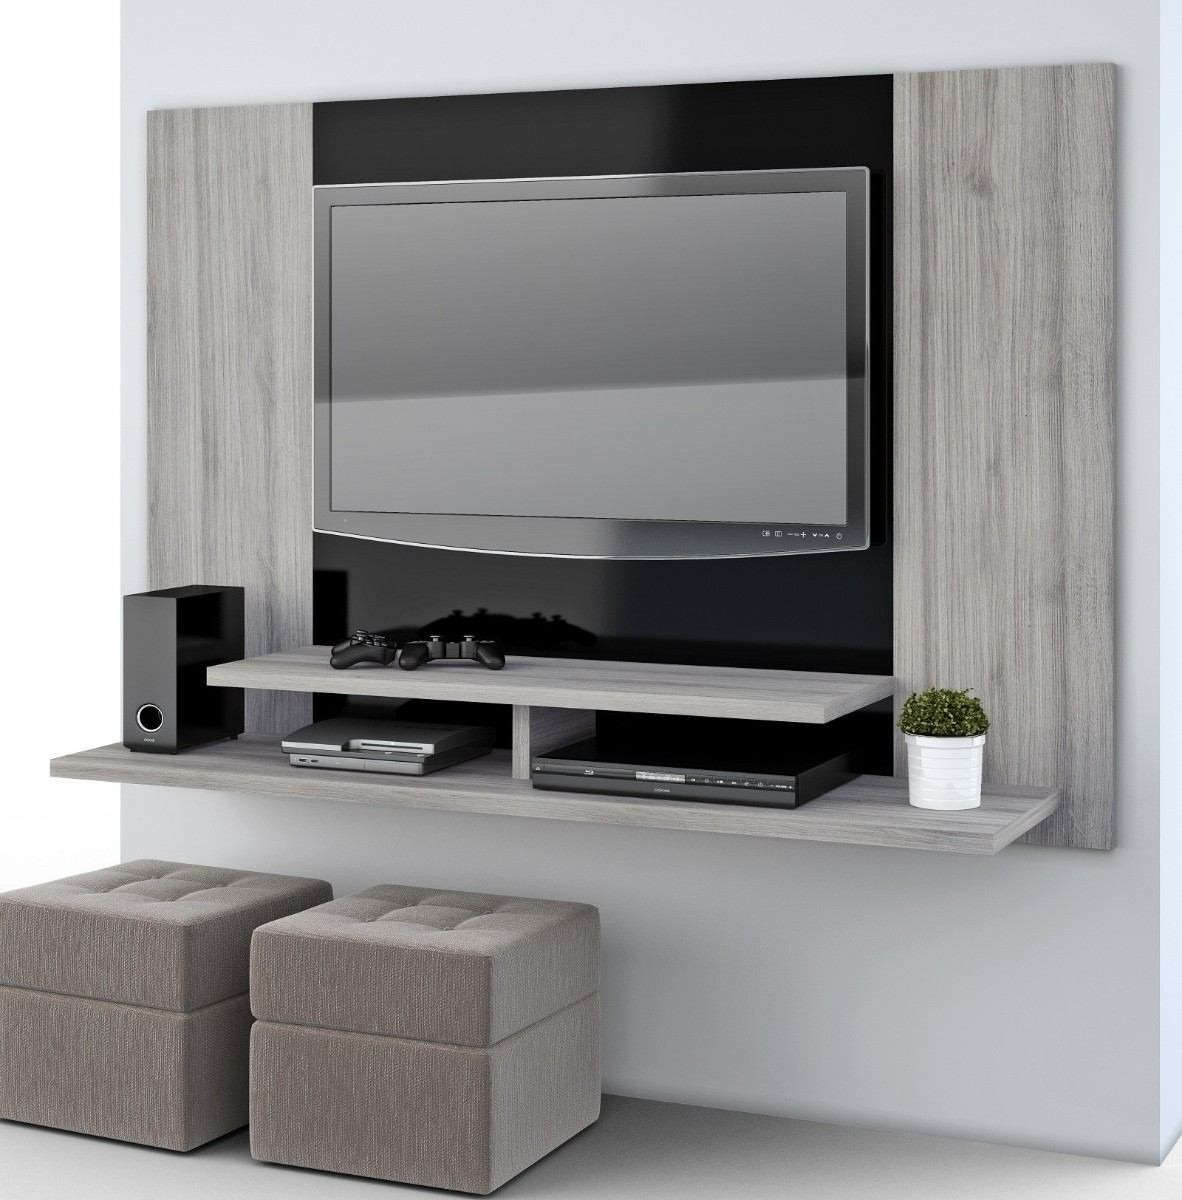 Mueble flotante para tv moderno ref manhatan for Muebles para television